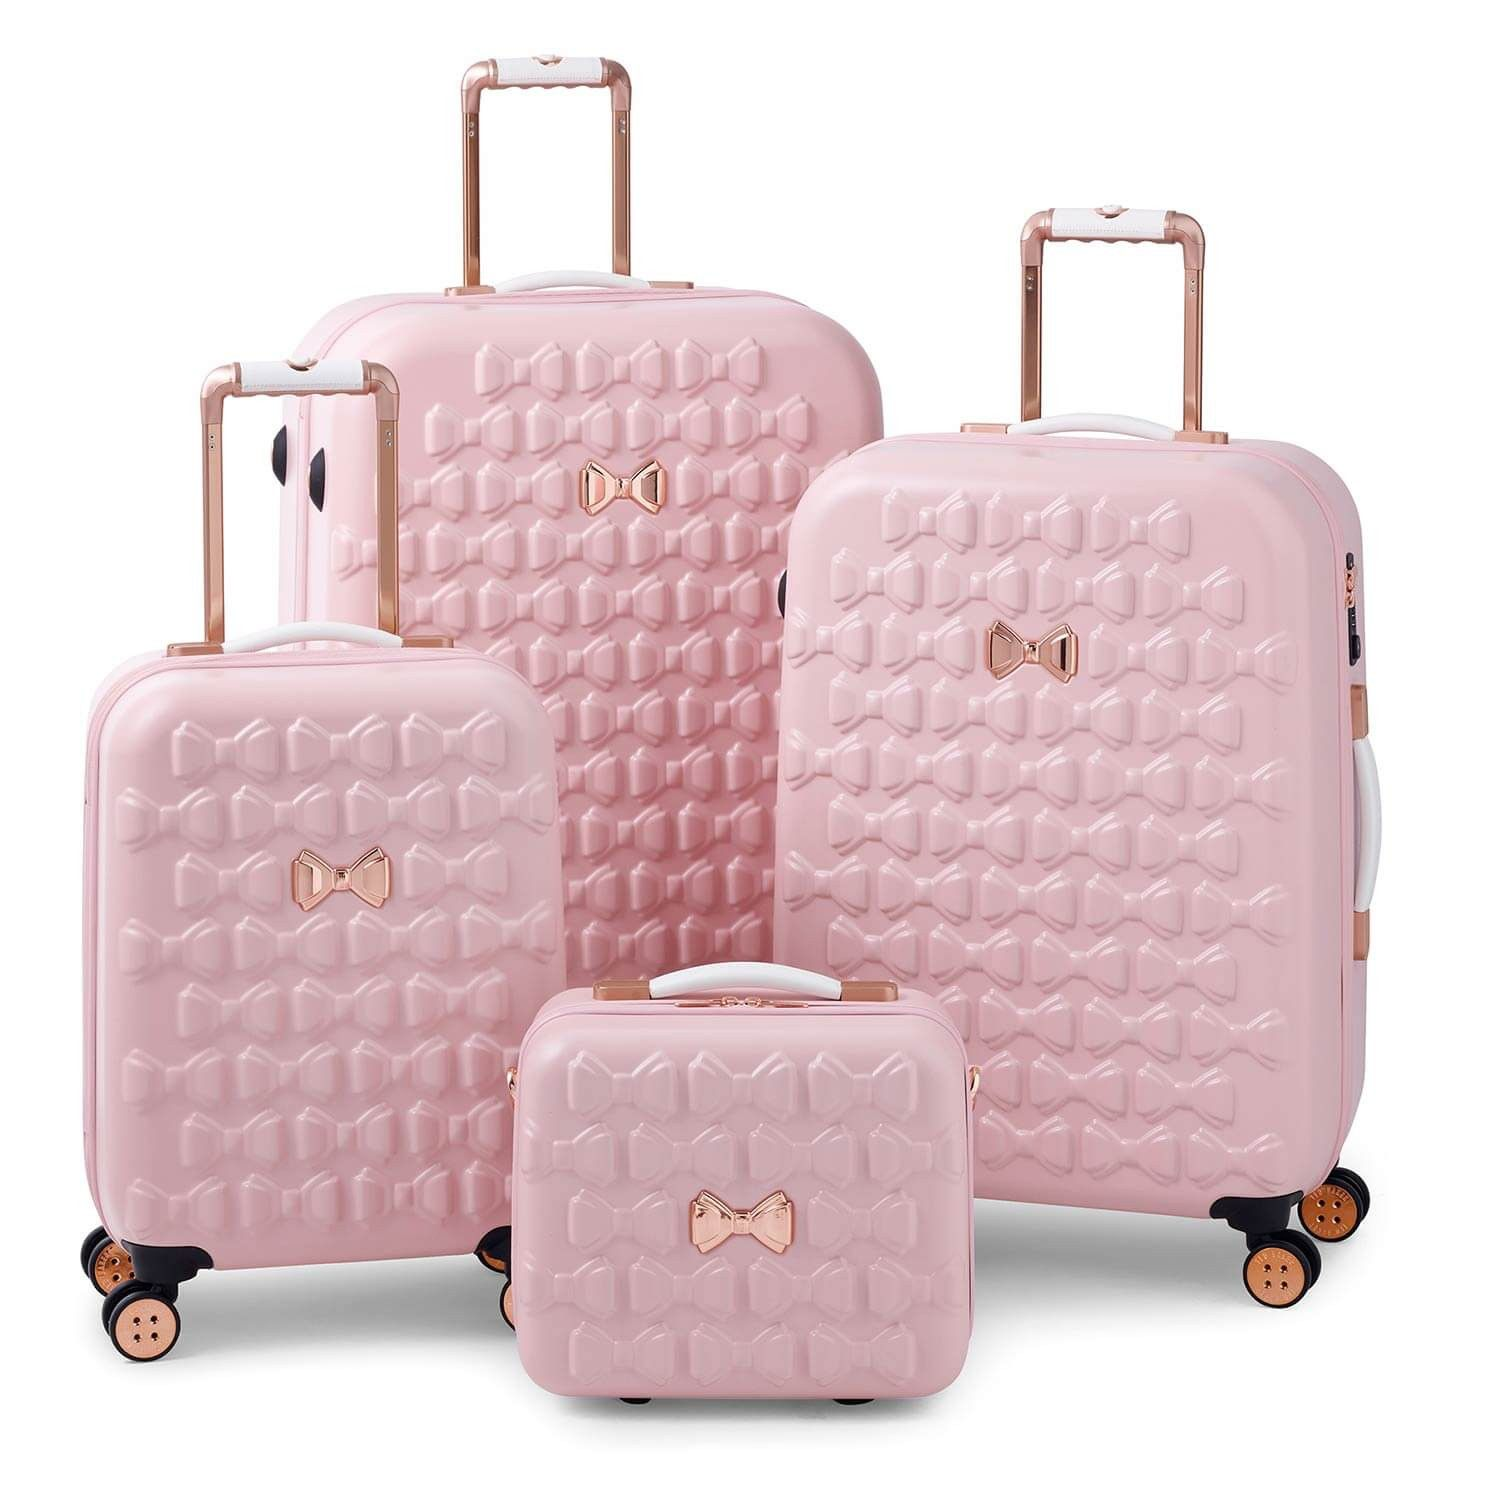 d512292b9 Image result for ted baker pink luggage | Ted Baker | Pink luggage ...